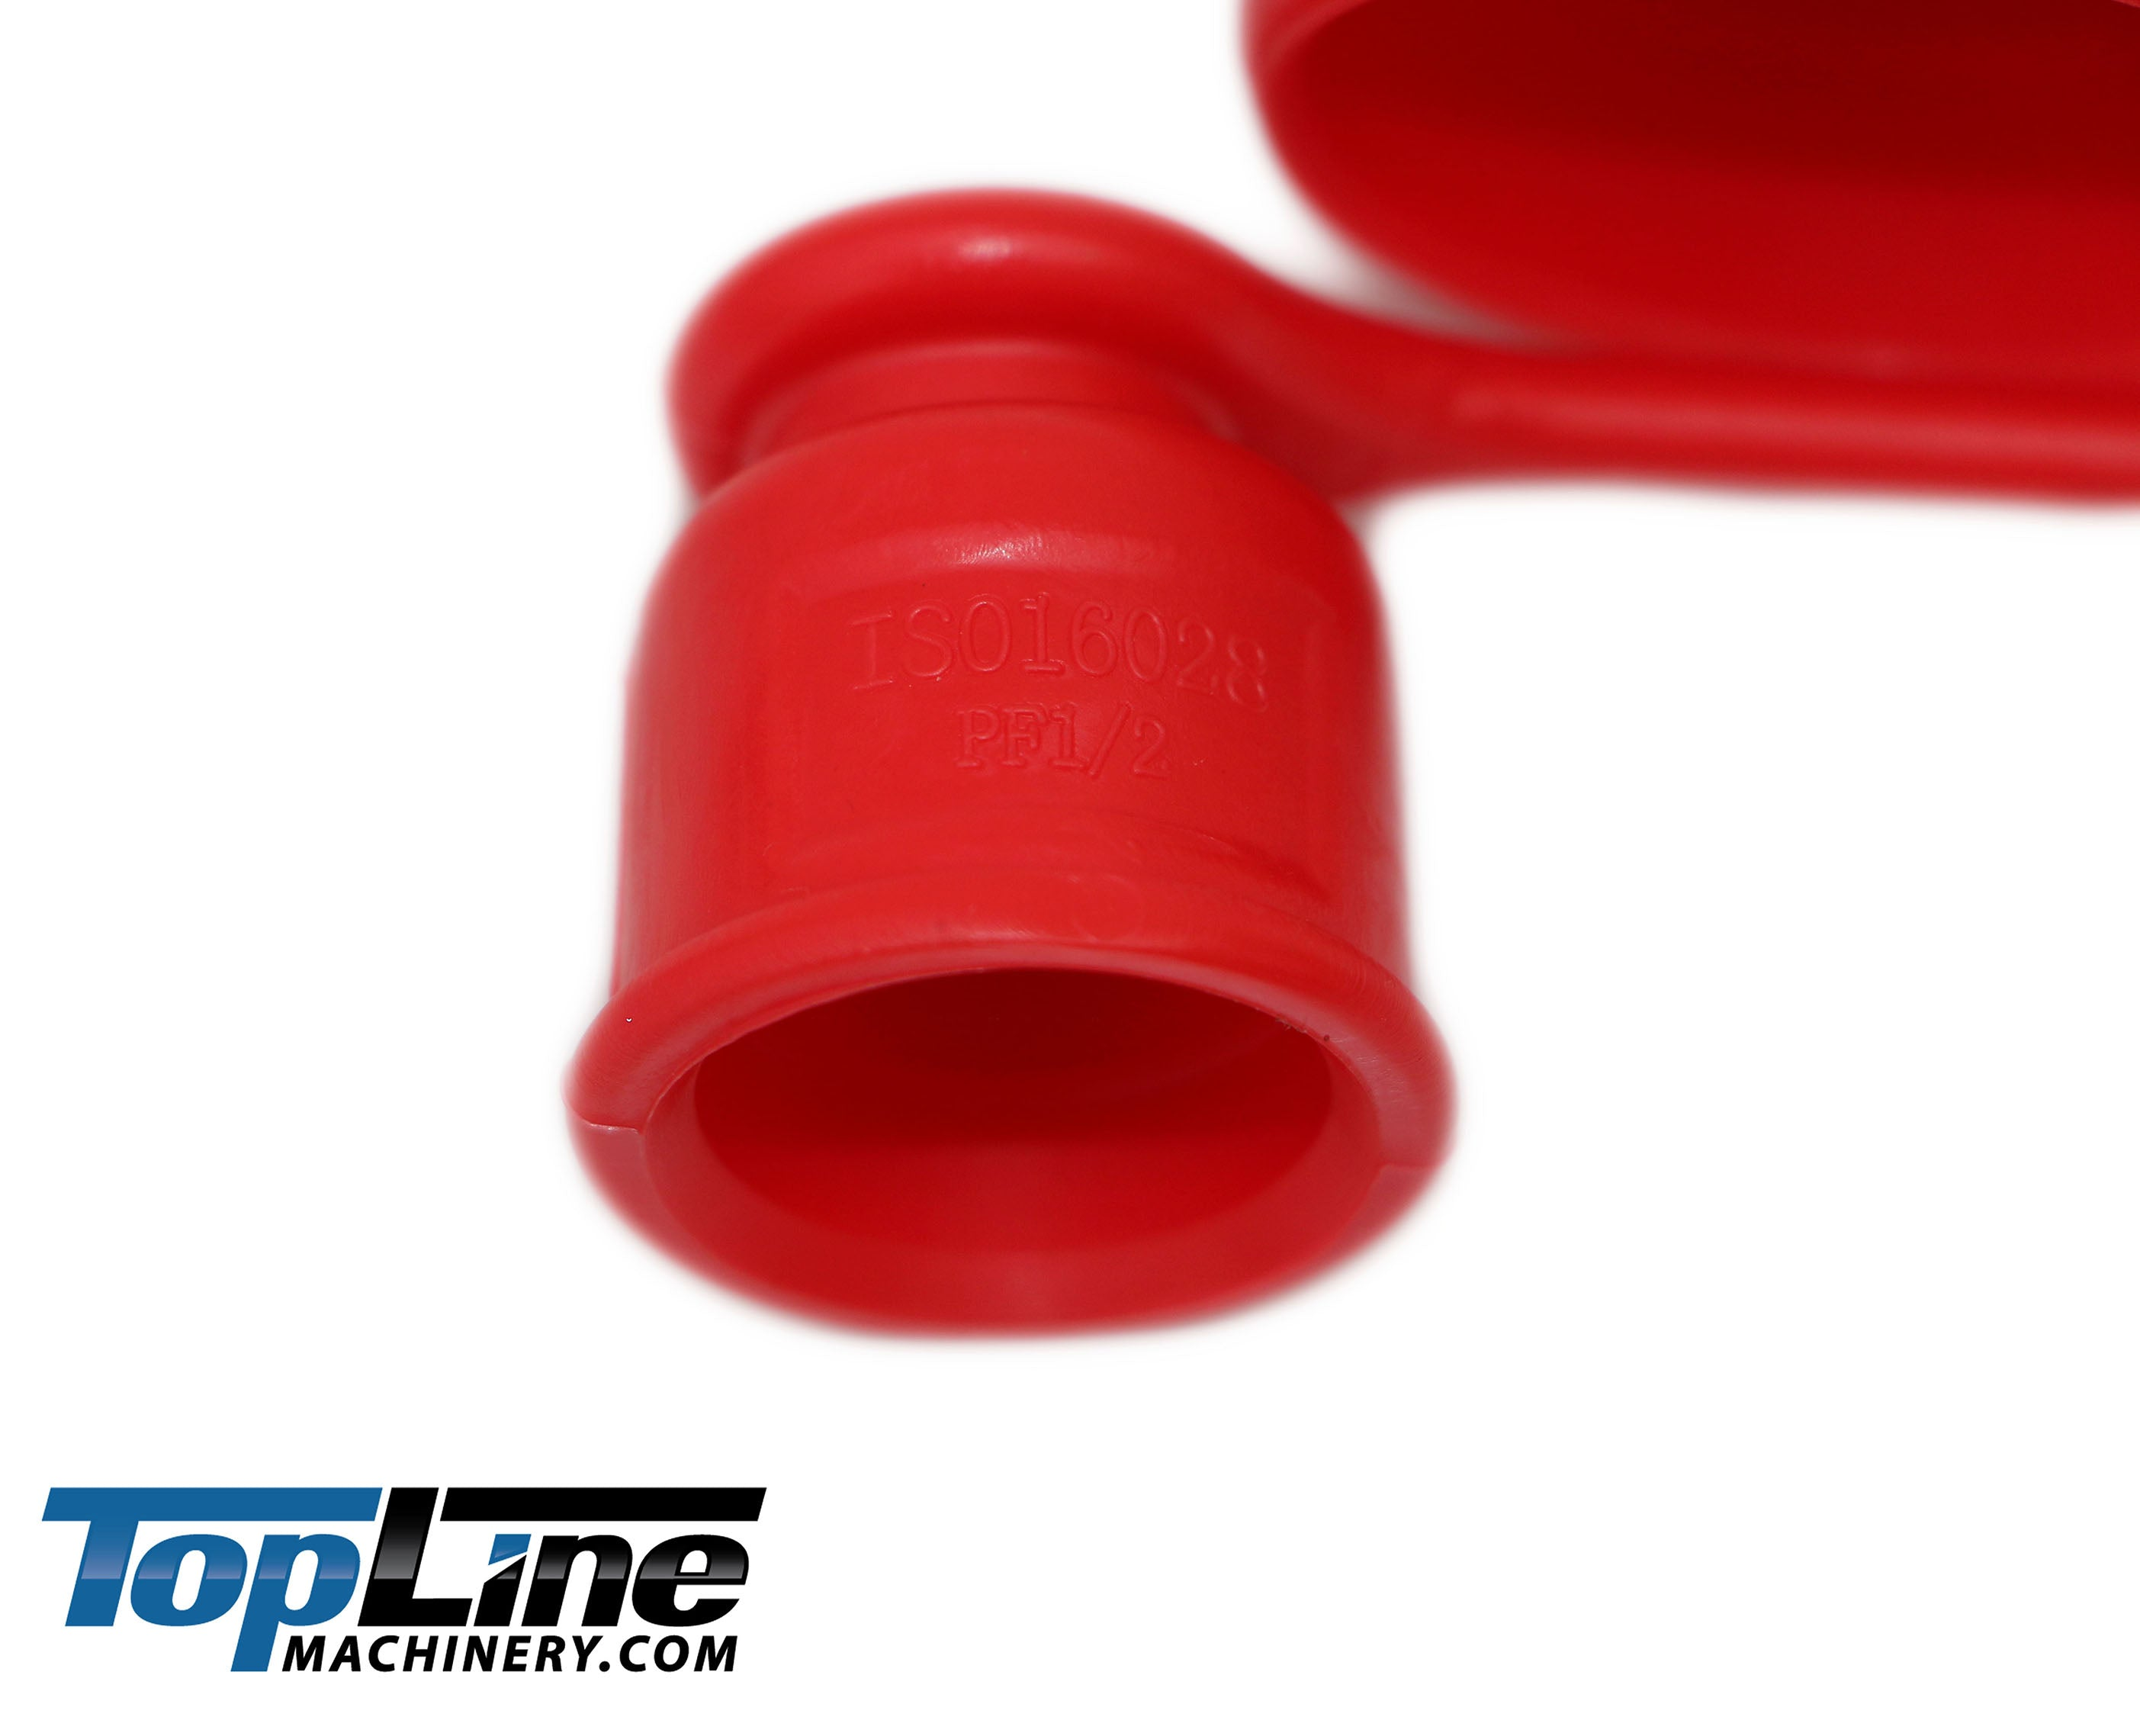 Red Male Dust Cap and Female Plug Cover for Flat Face Quick Coupler Bobcat Skid Steer OIIKI 3//4 Hydraulic Coupler Dust Cap ISO A Pioneer Style Hydraulic Quick Disconnects Port Plug Fittings